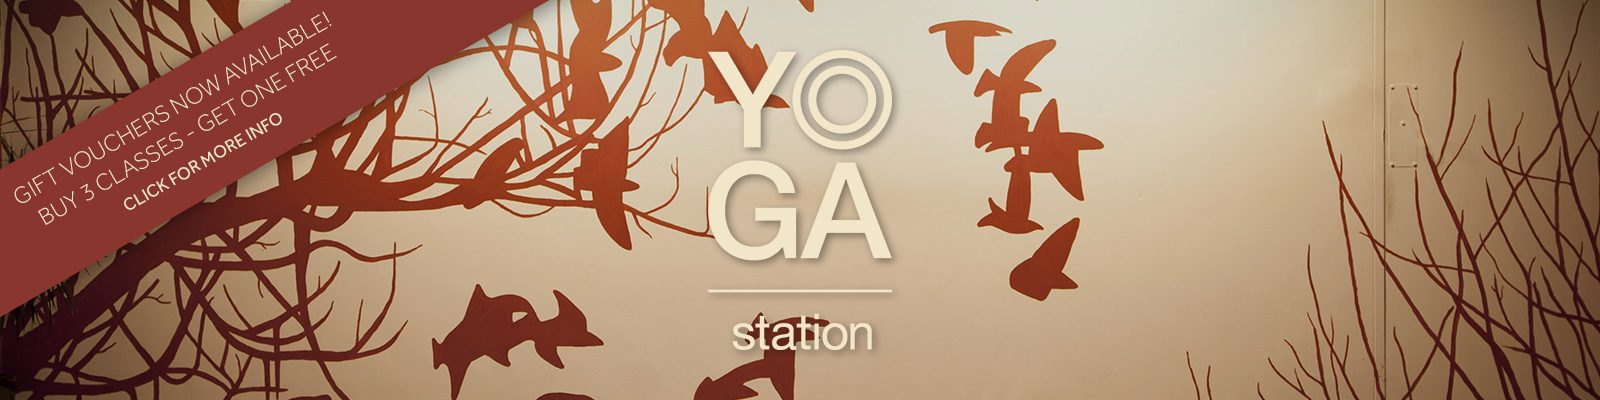 yoga-station-home-wall-gv